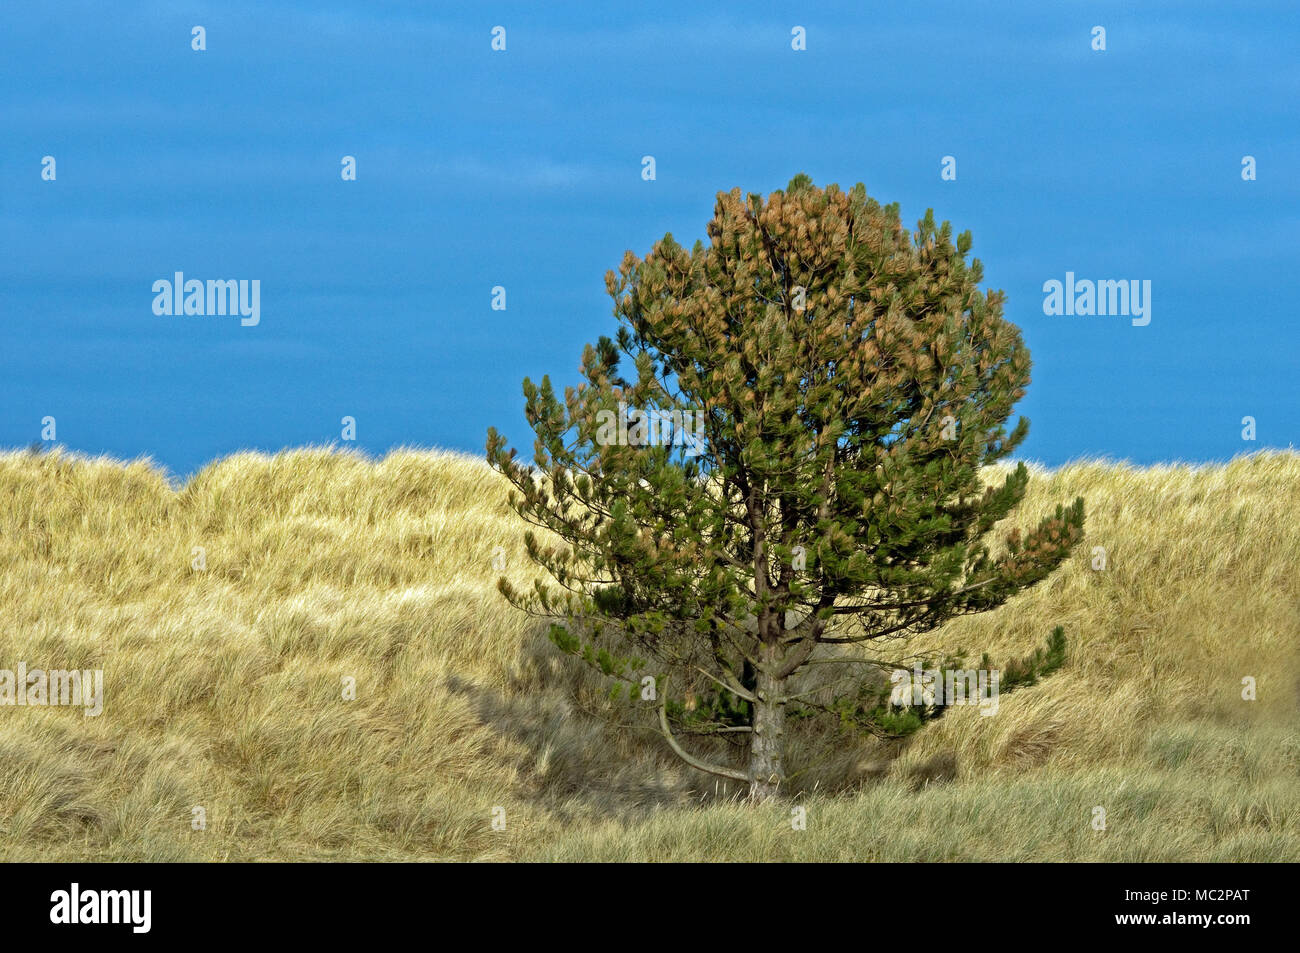 Corsican Pine in the sand dues just south of Bamburgh Castle, Northumberland Coast - Stock Image